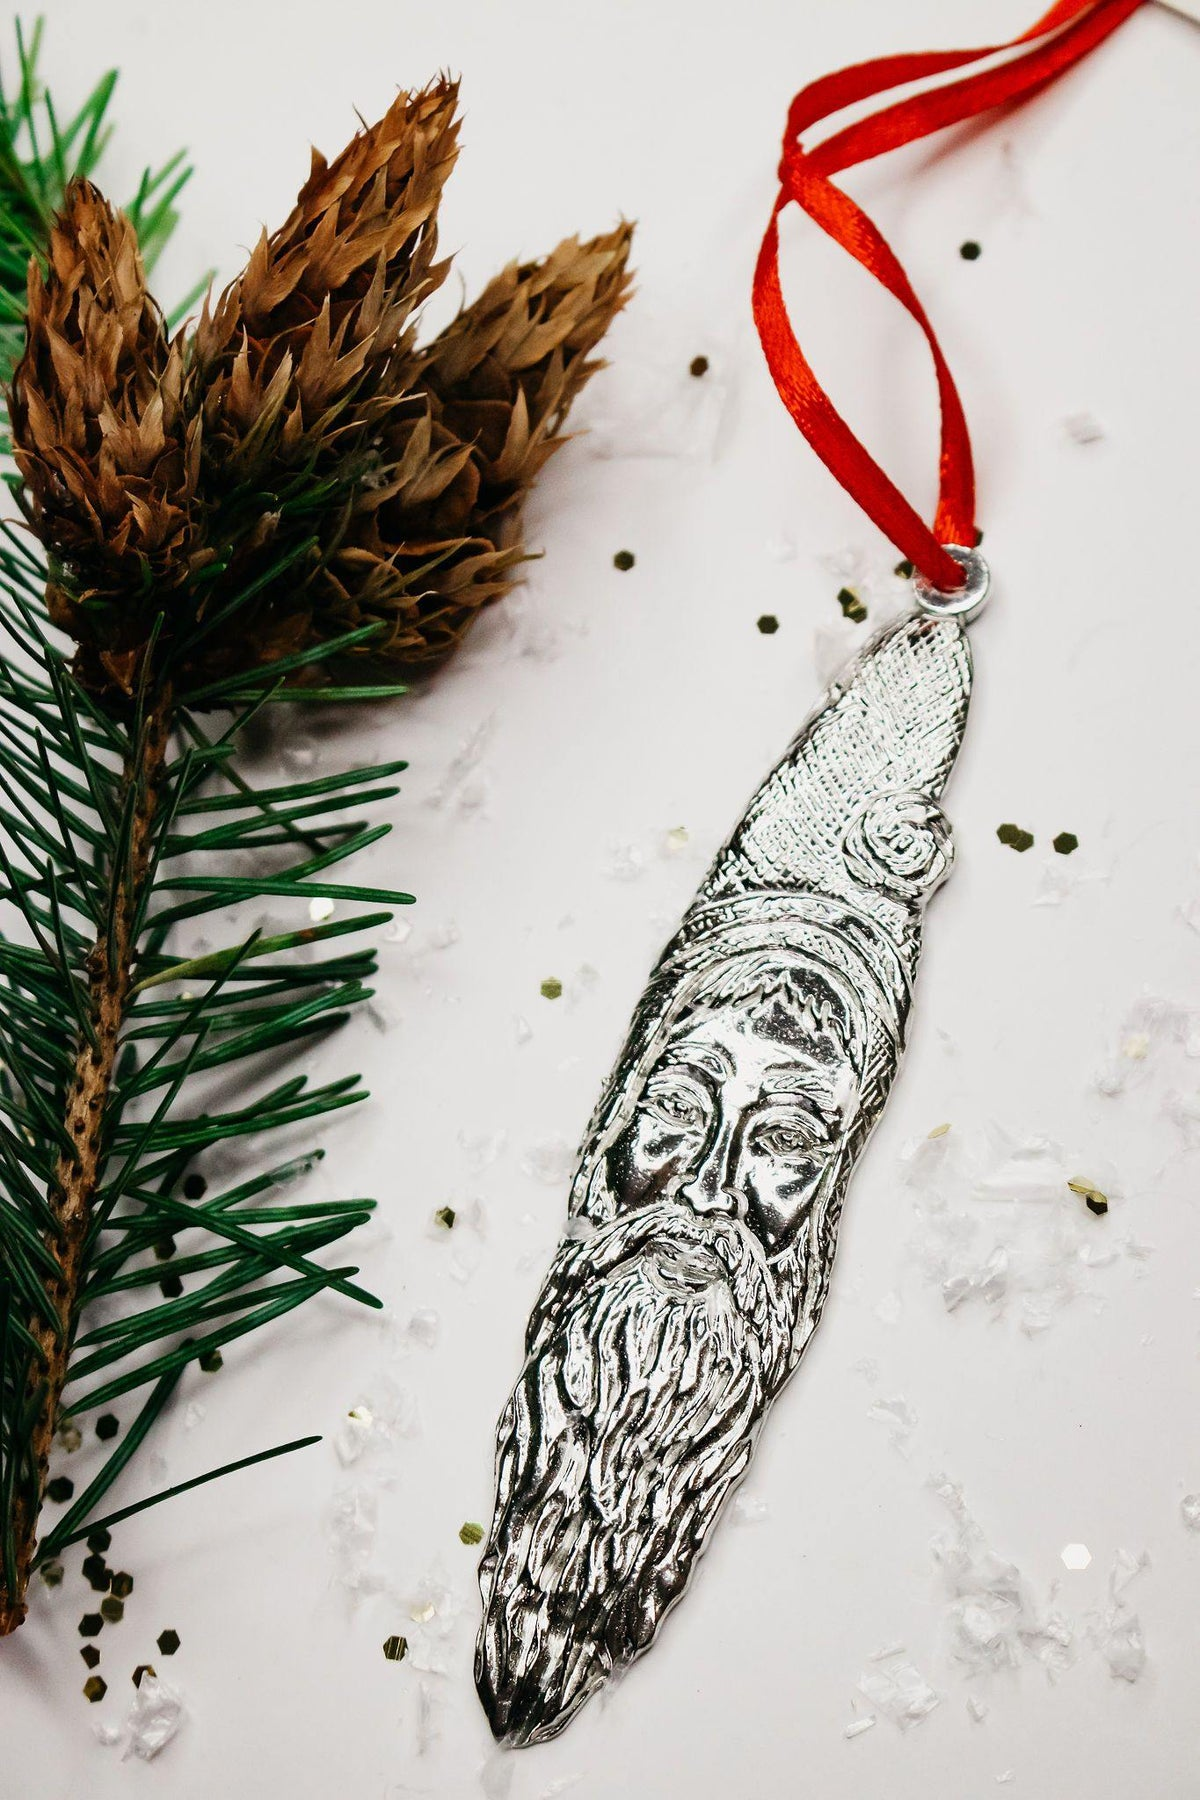 Handmade Santa Claus Sickle Beard Christmas Holiday Ornament Pewter